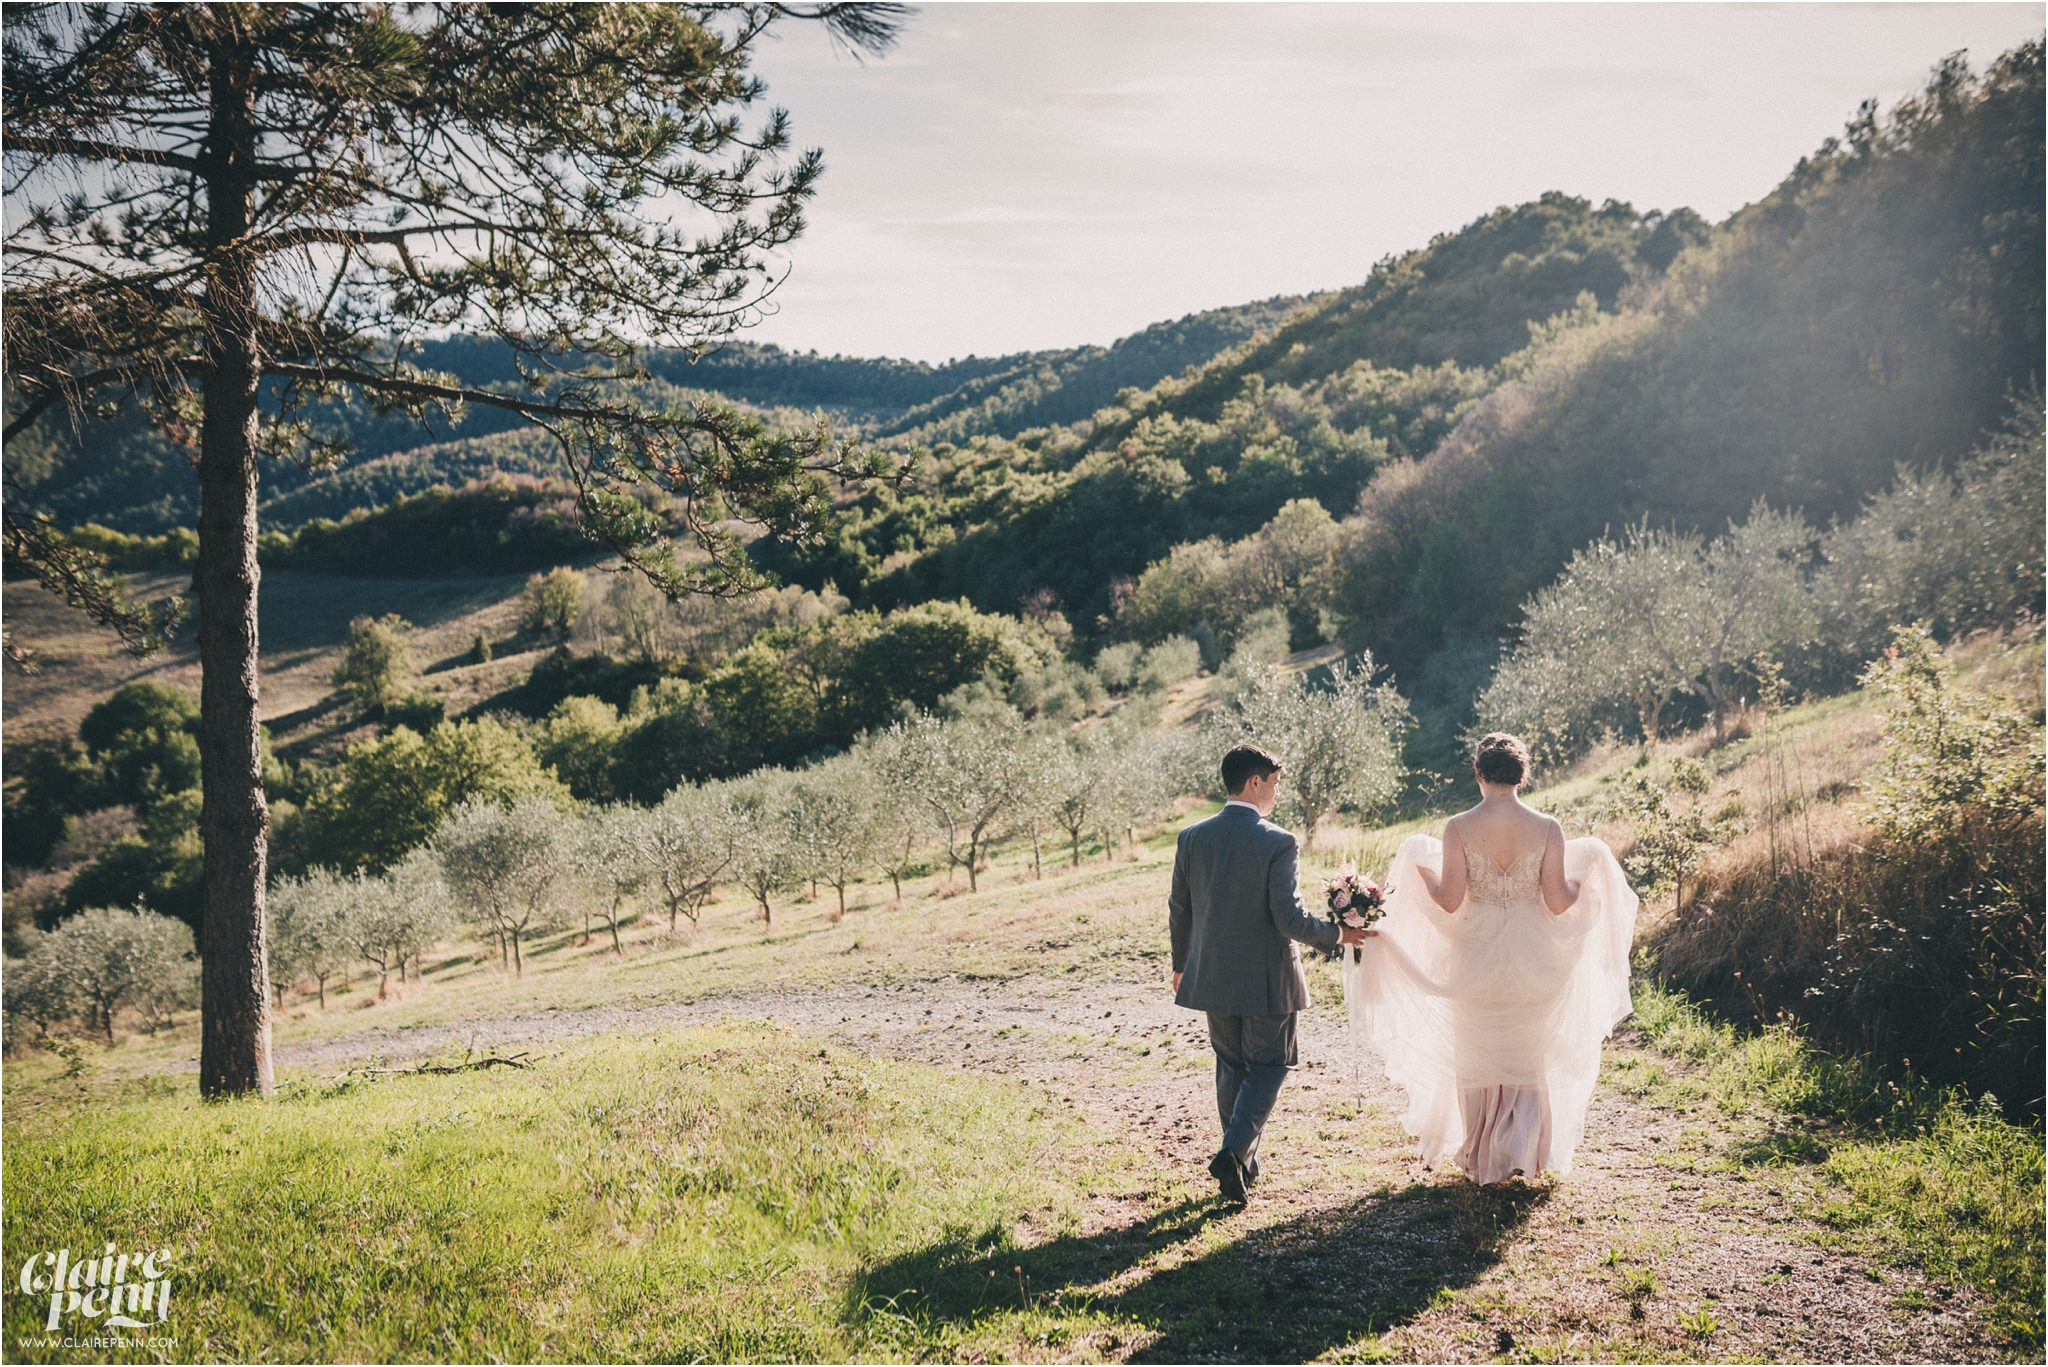 Umbria destination wedding Italy Casa Bruciata 00051.jpg